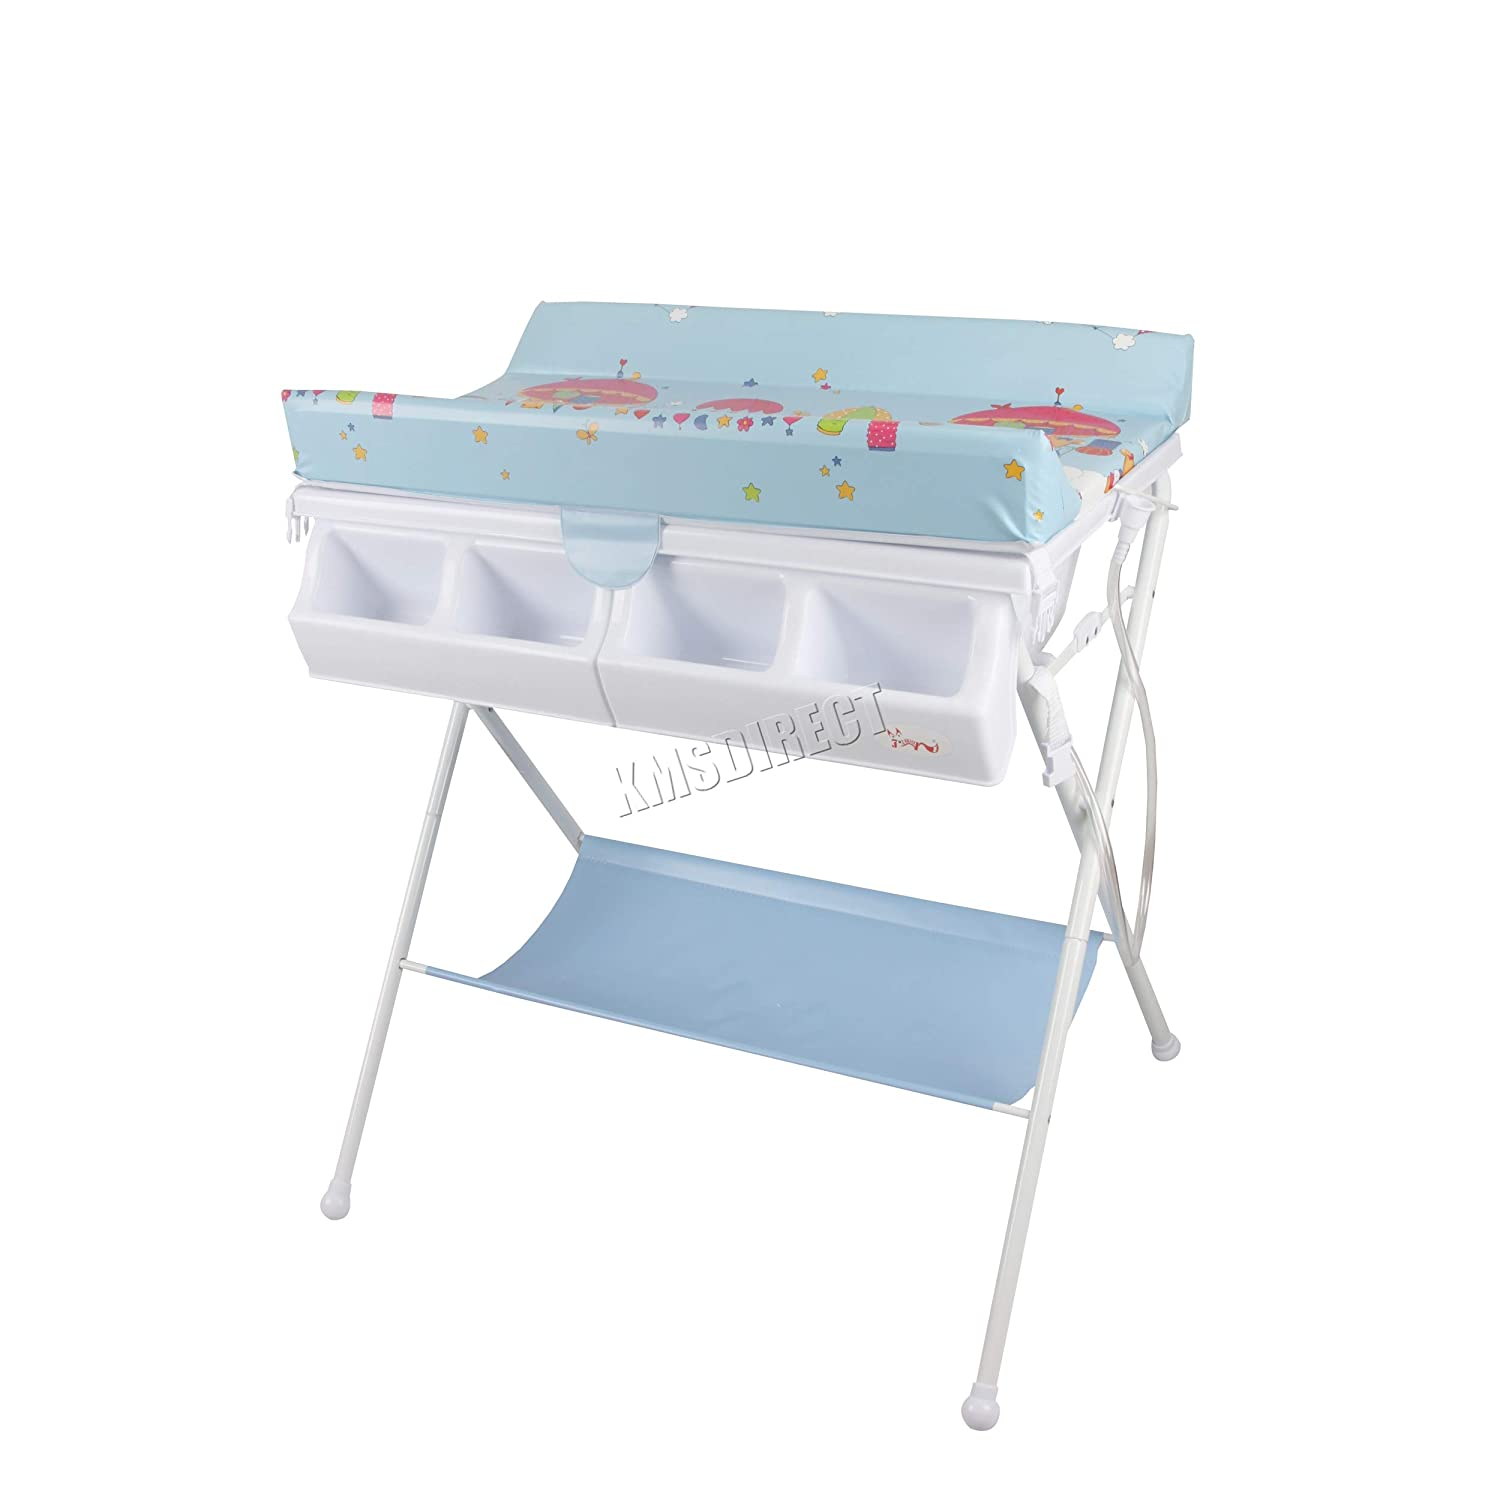 FoxHunter Foldable 2 in 1 Baby Bath Changing Dresser Station Table Unit Storage Towel Rail Infant Nursery Trays Furniture BCT01 Blue KMS BCTW01